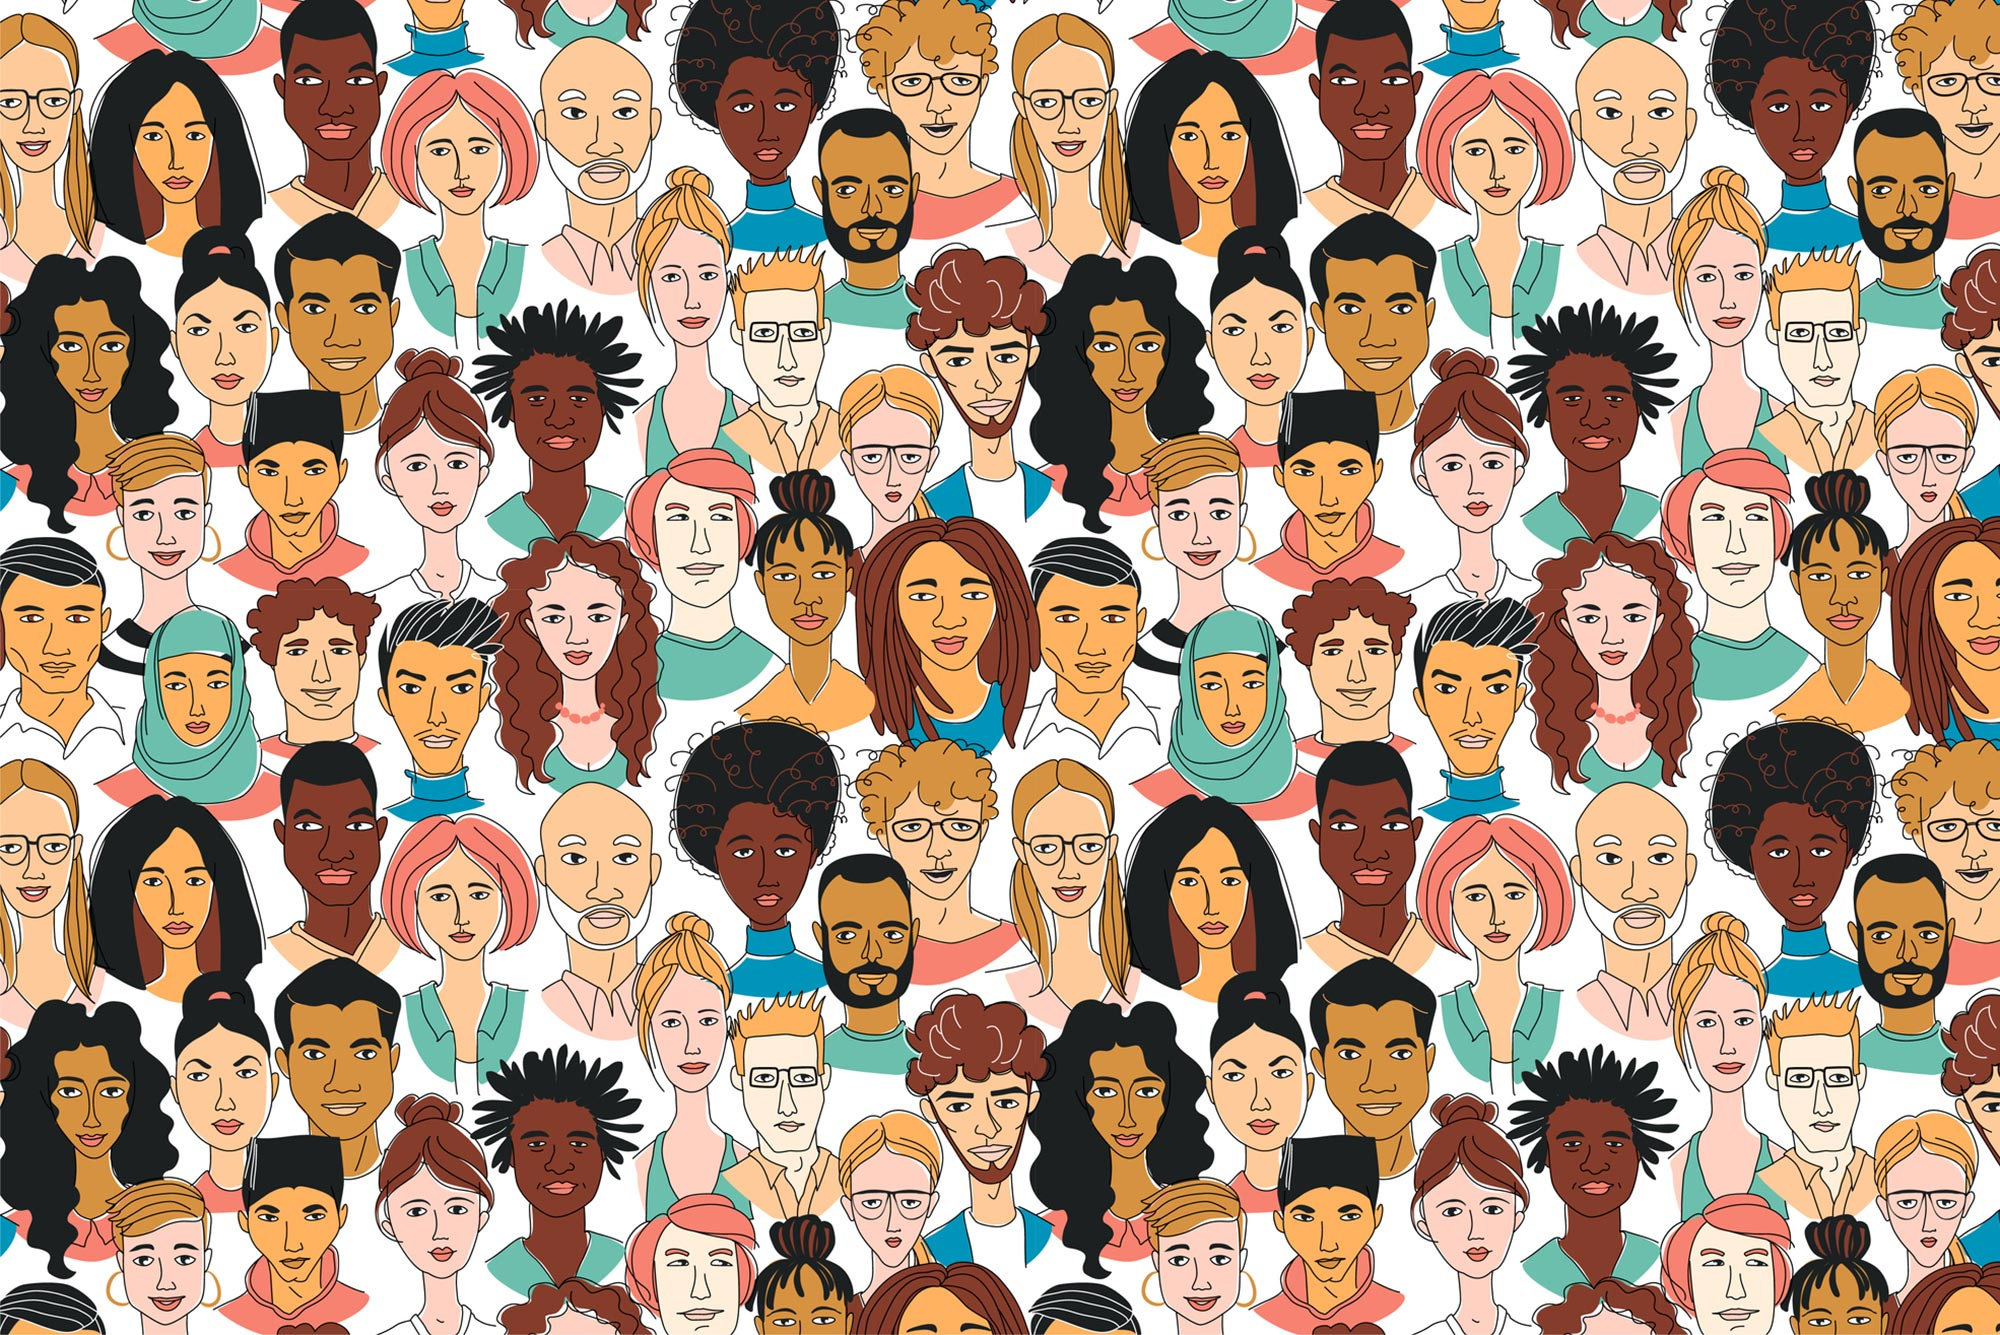 Illustration showing faces from different races and ethnicities.